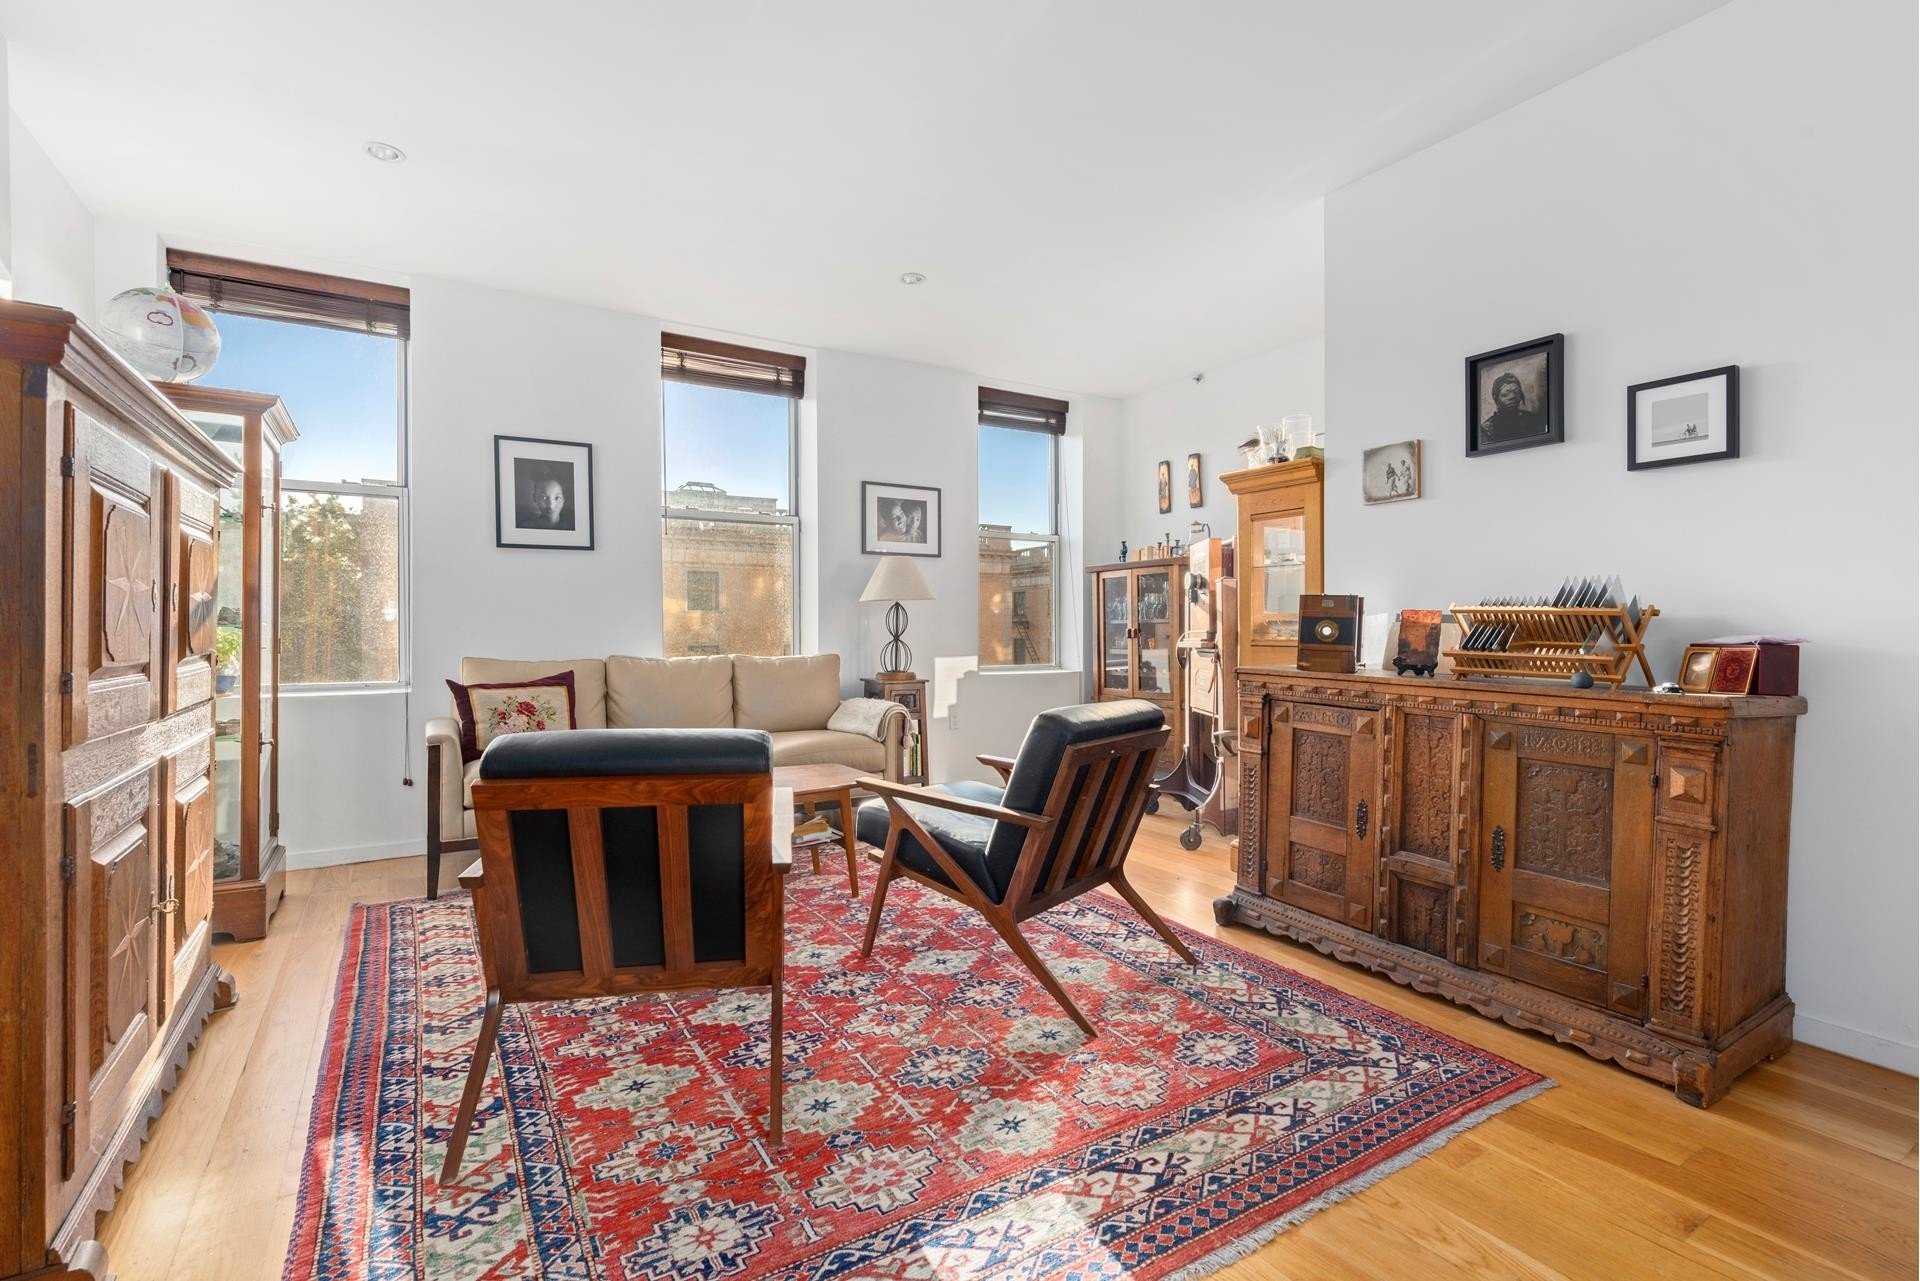 2. Condominiums for Sale at One Striver's Row, 2605 Frederick Douglass Boulevard, 4B Central Harlem, New York, NY 10030